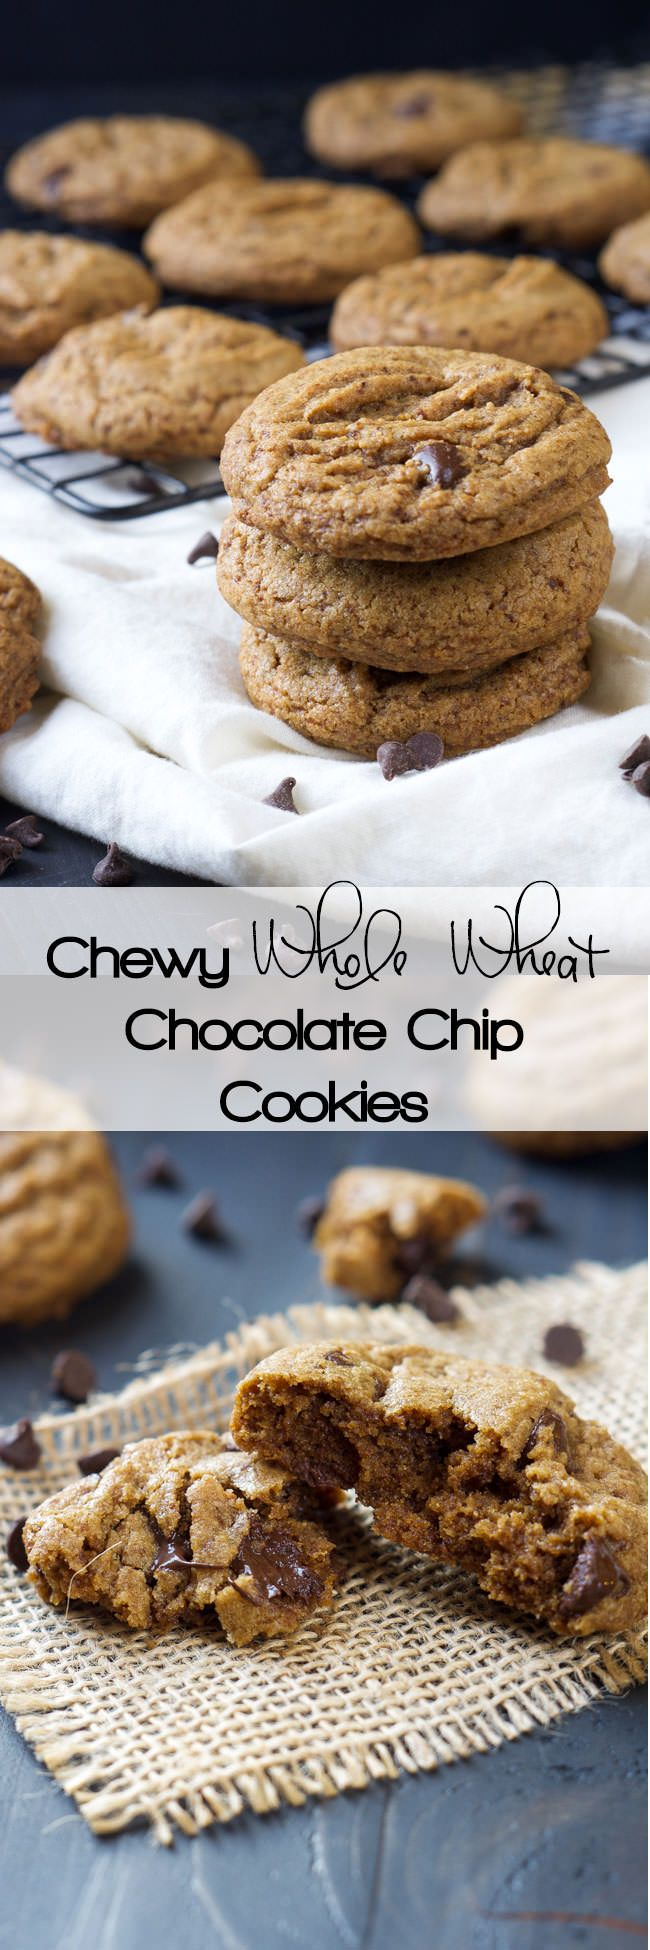 Whole Wheat Chocolate Chip Cookie, Coconut Oil, Healthy, Easy, Chewy, No Butter, Best, Soft, Baking, Desserts, Dairy Free